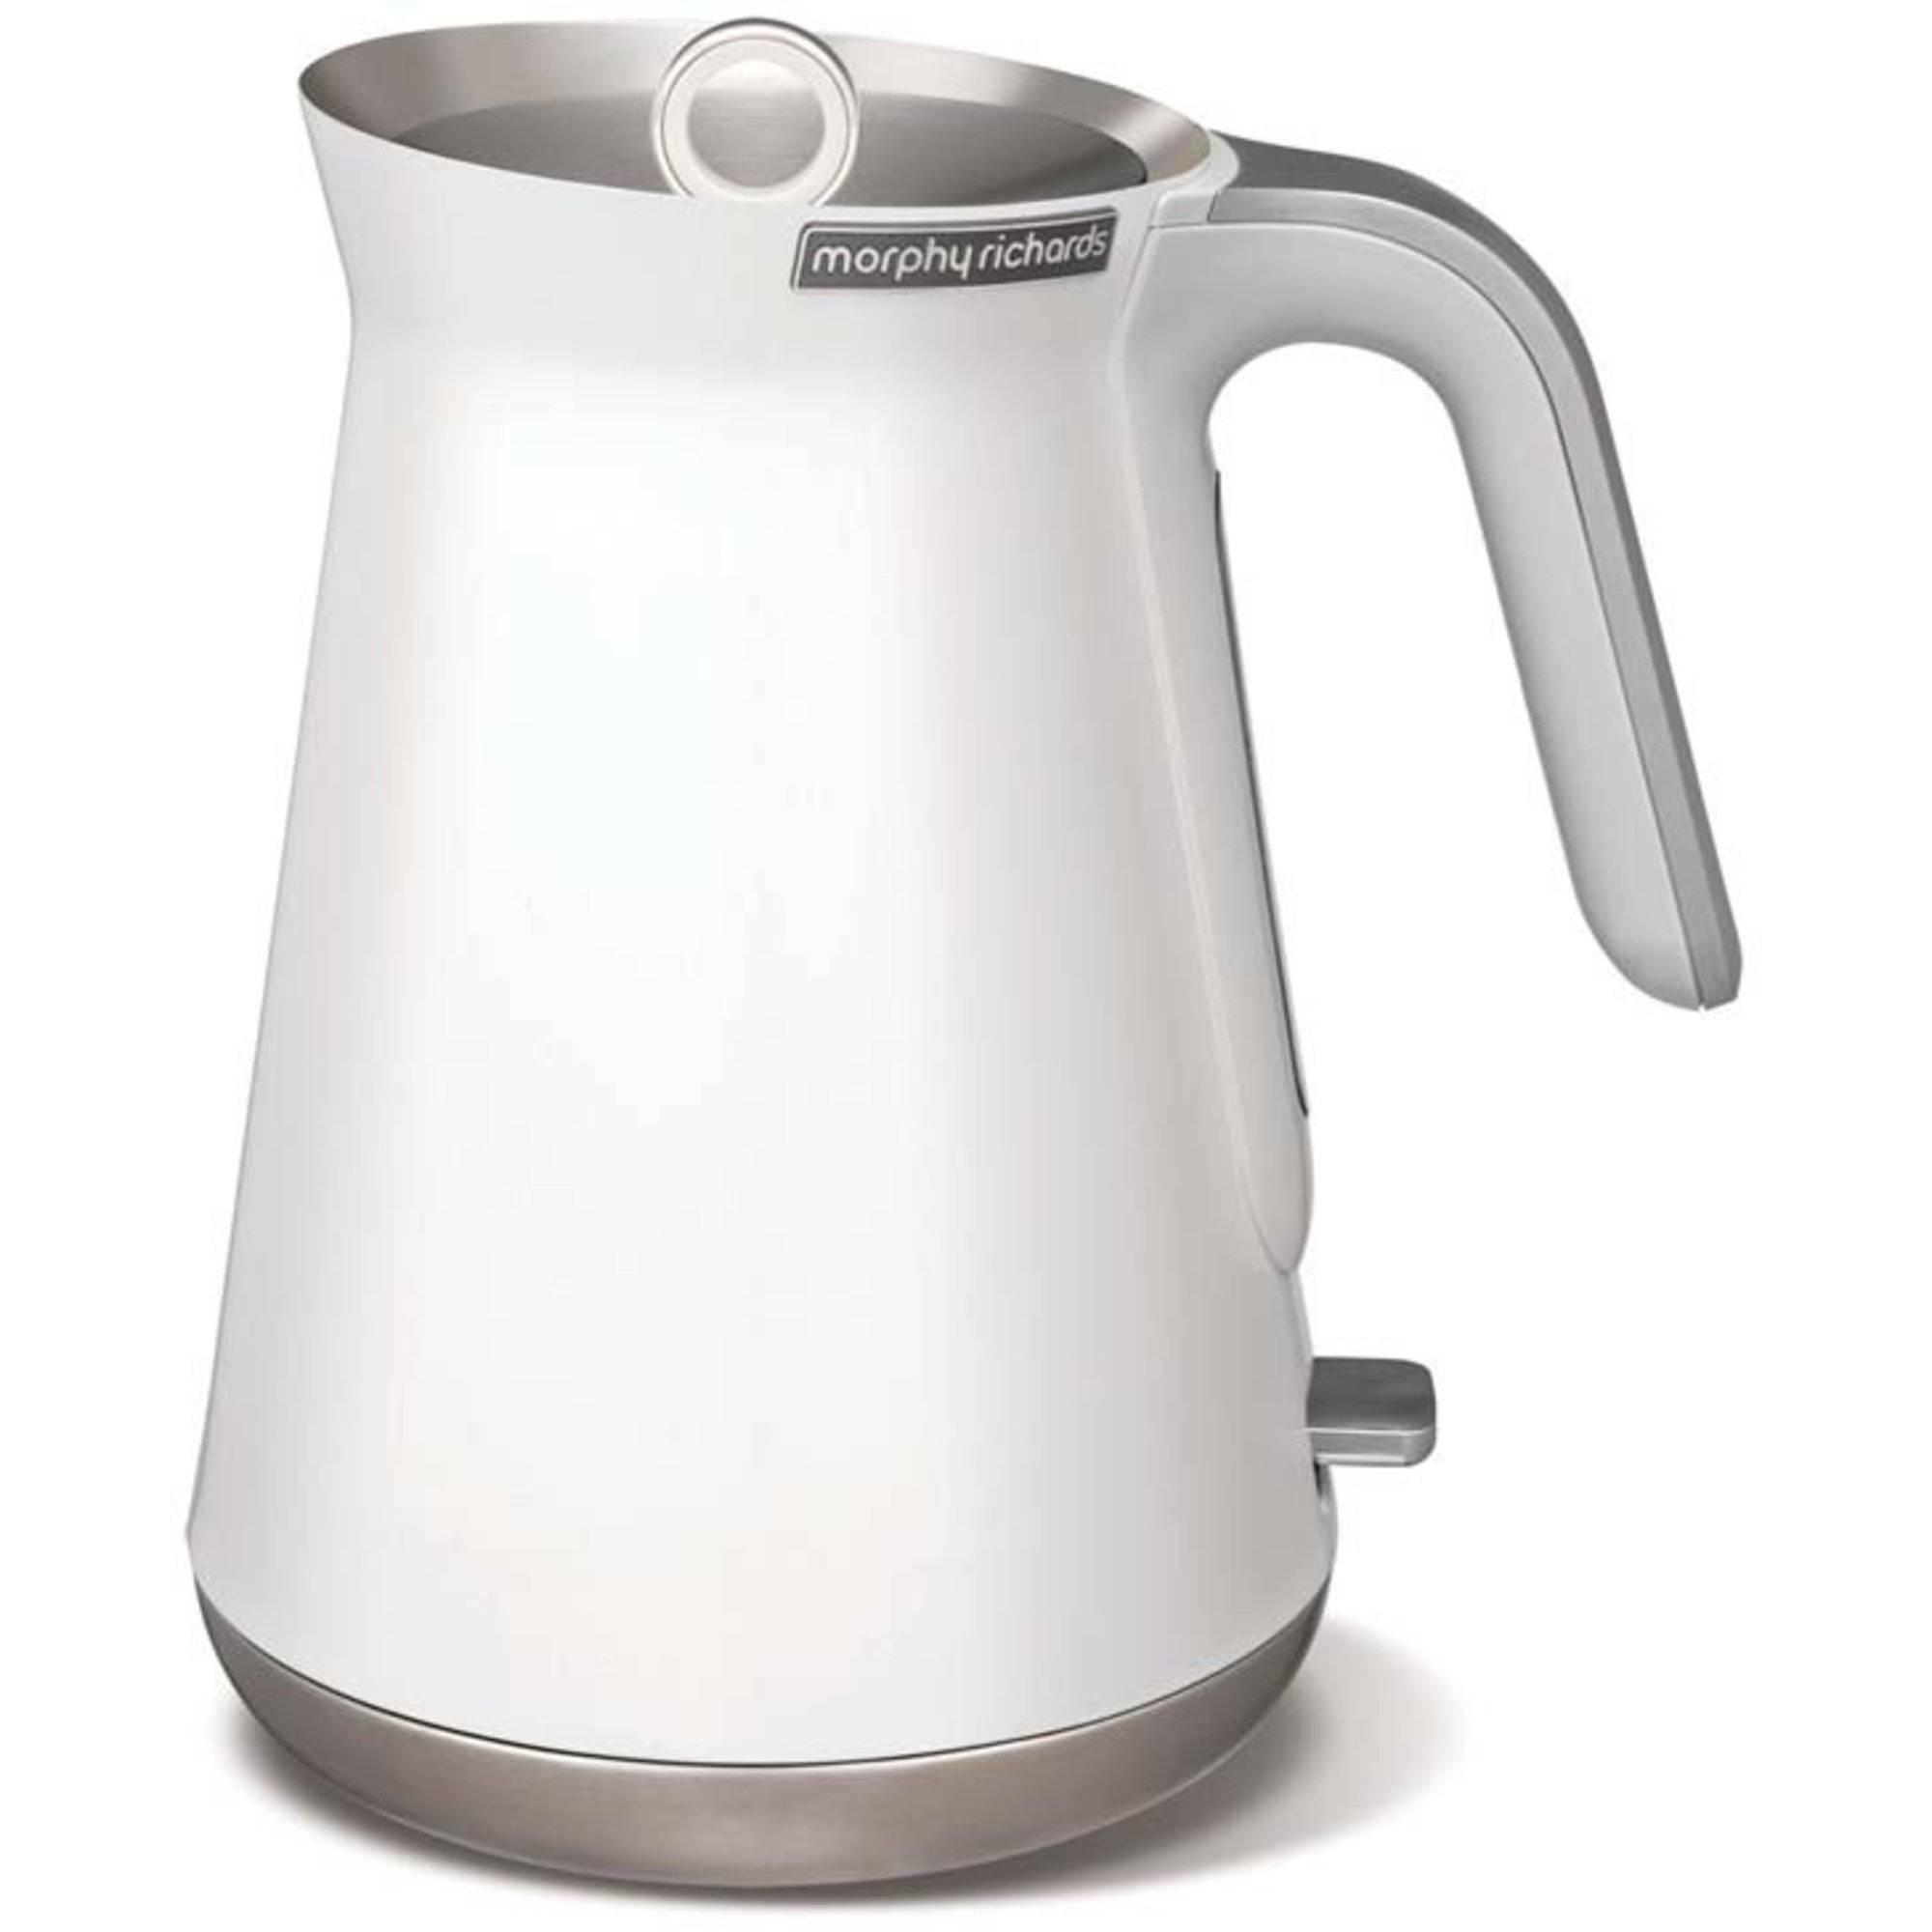 Morphy Richards Aspect Vattenkokare 1,5 l Vit